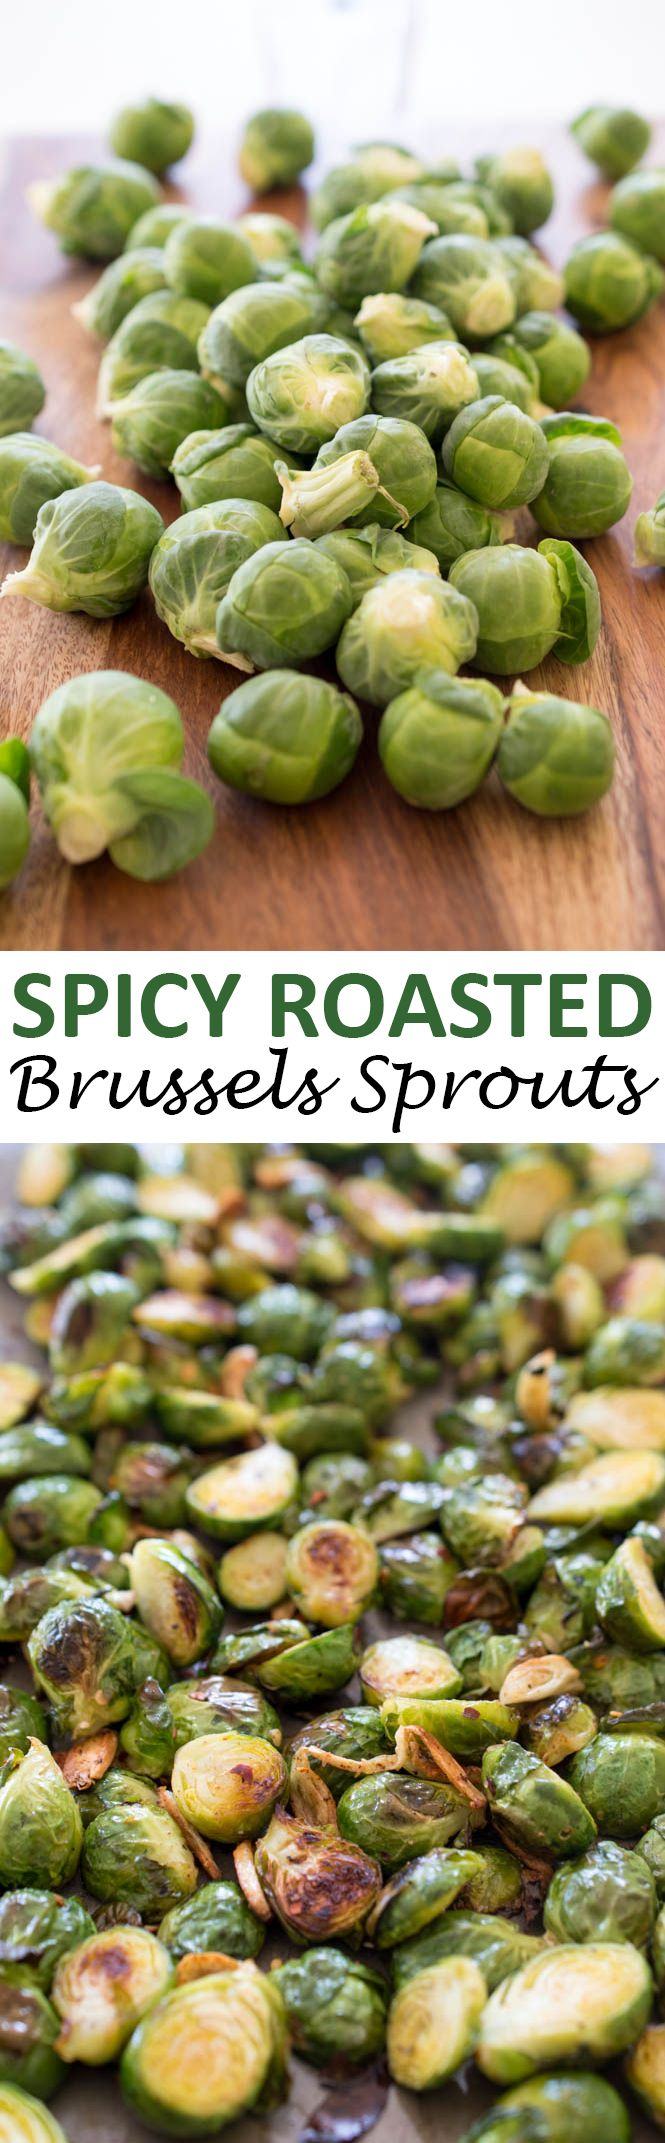 Super Easy Spicy Roasted Garlic Brussels Sprouts. Perfect side dish to compliment any meal. Takes less than 30 minutes to make!